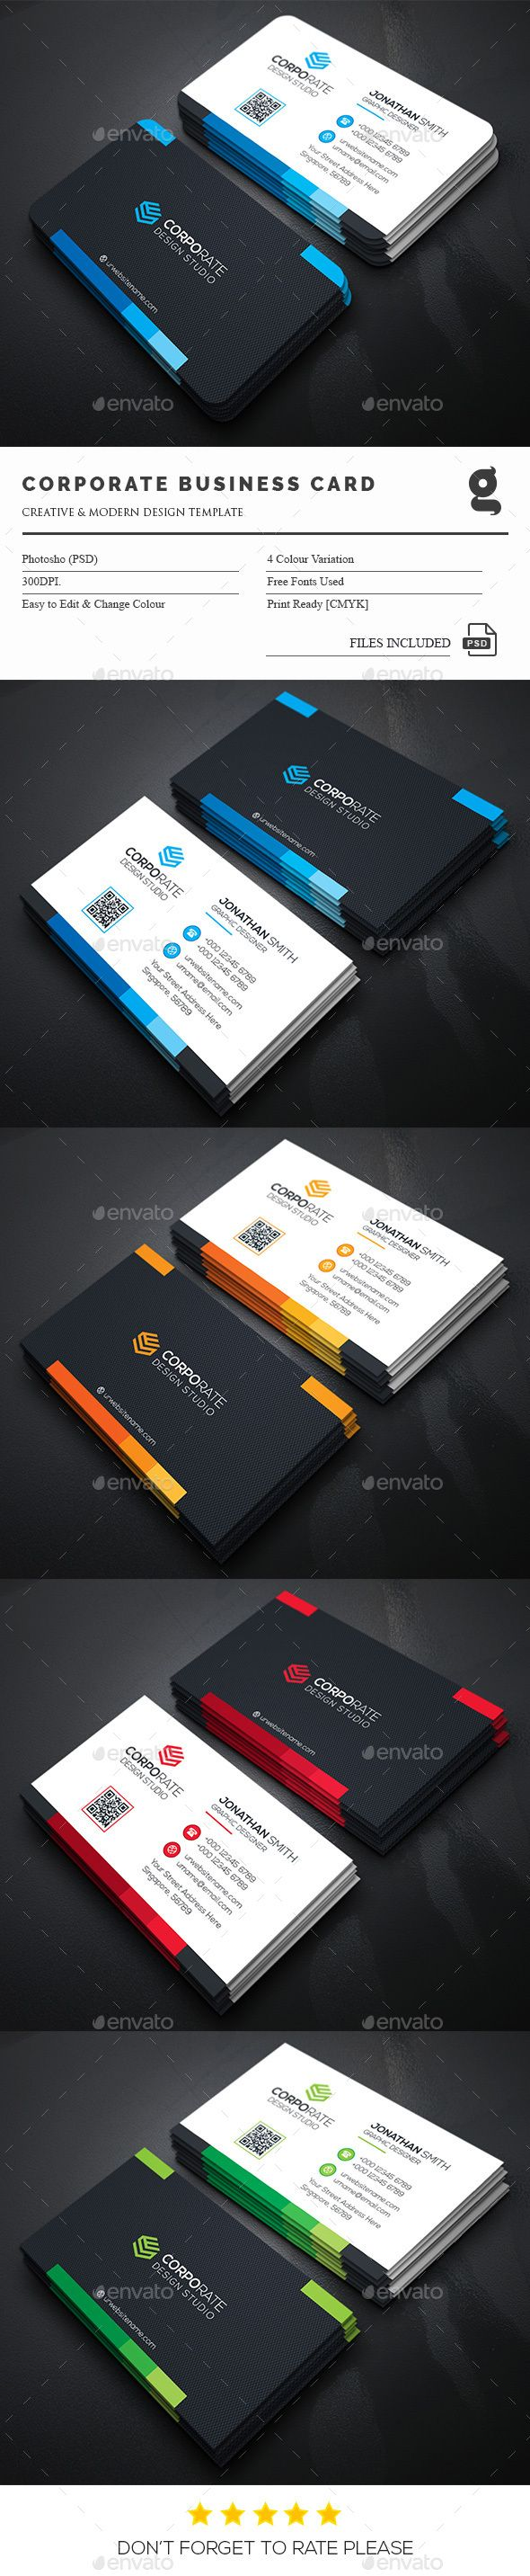 Corporate Business Card — Photoshop PSD #creative #both side design • Available here → https://graphicriver.net/item/corporate-business-card/15098610?ref=pxcr